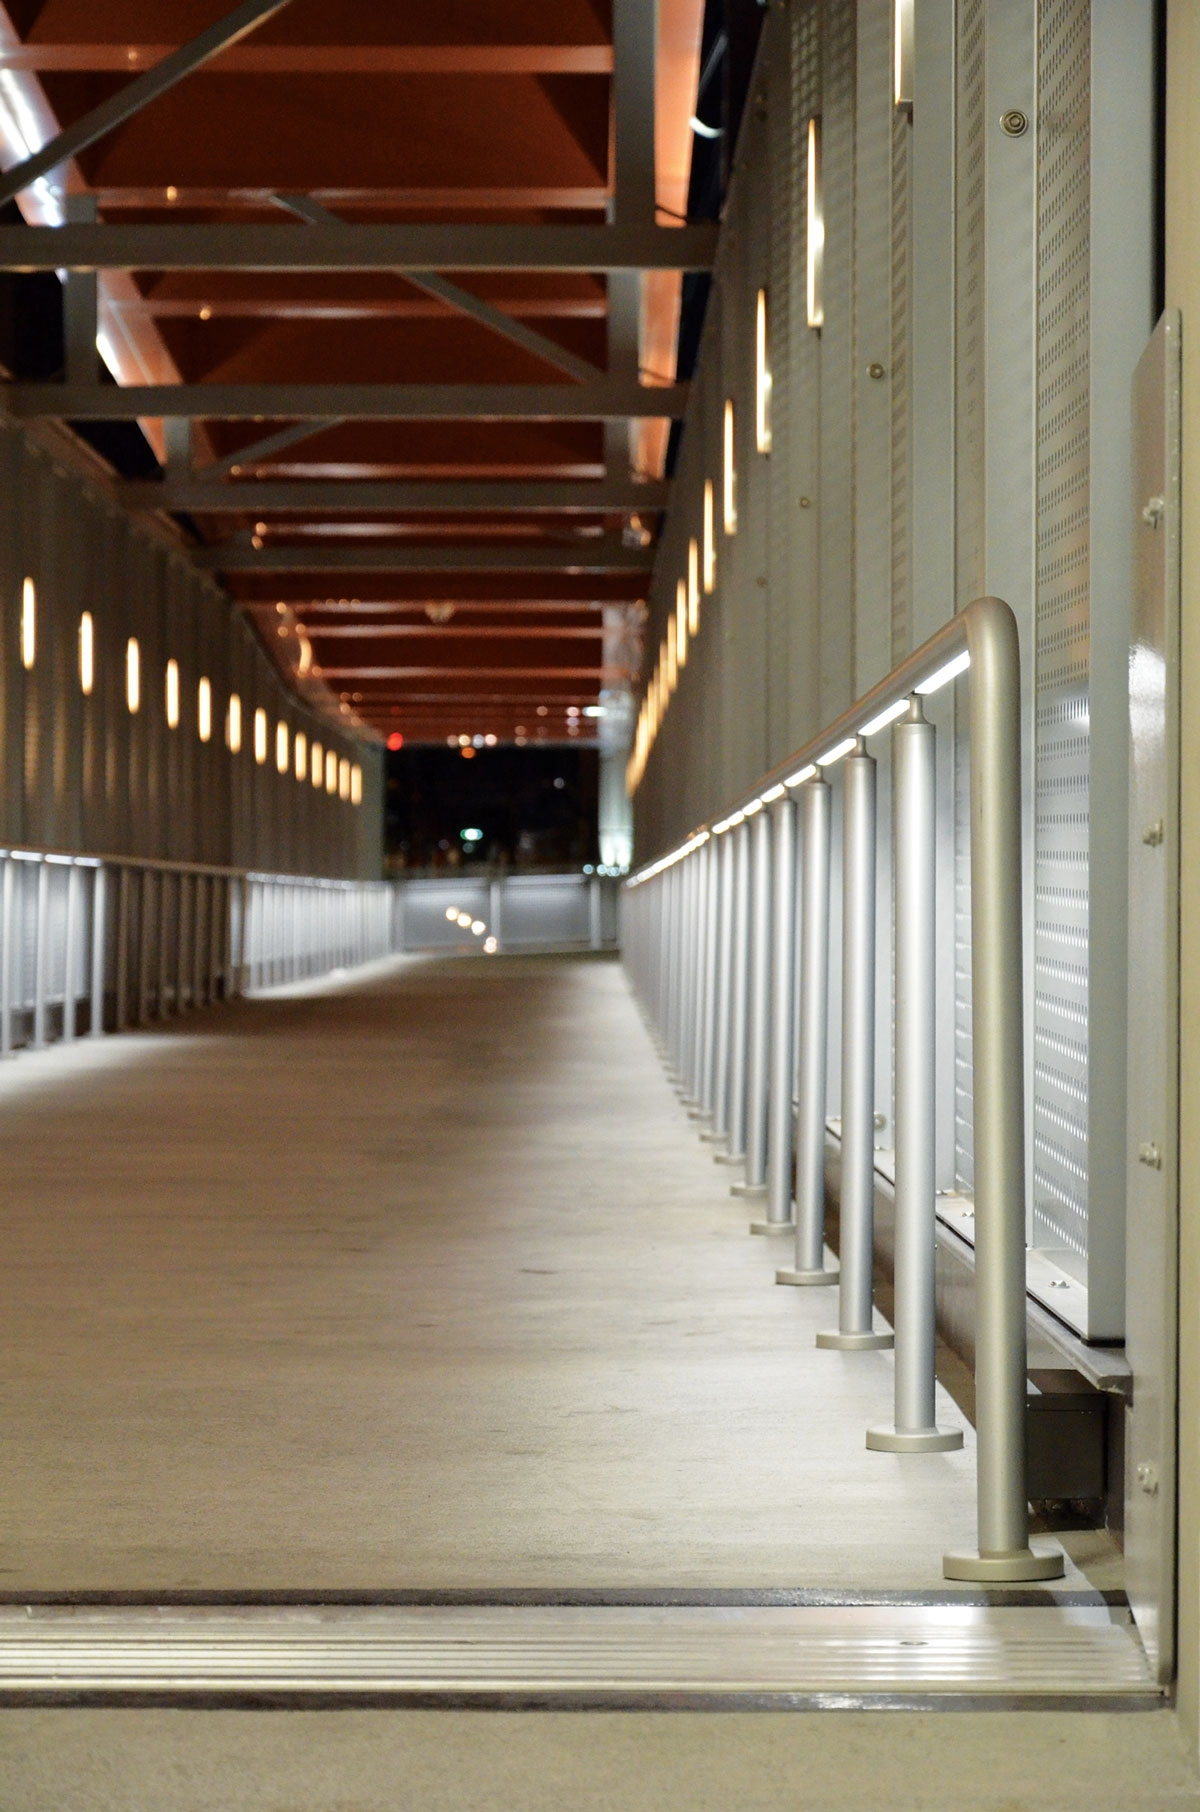 Pedestrian Walkways And Lumenrail A Perfect Match   Lighted Handrails For Stairs   Wrought Iron Railing   Minimal   Antique   Basement   Stair Banister